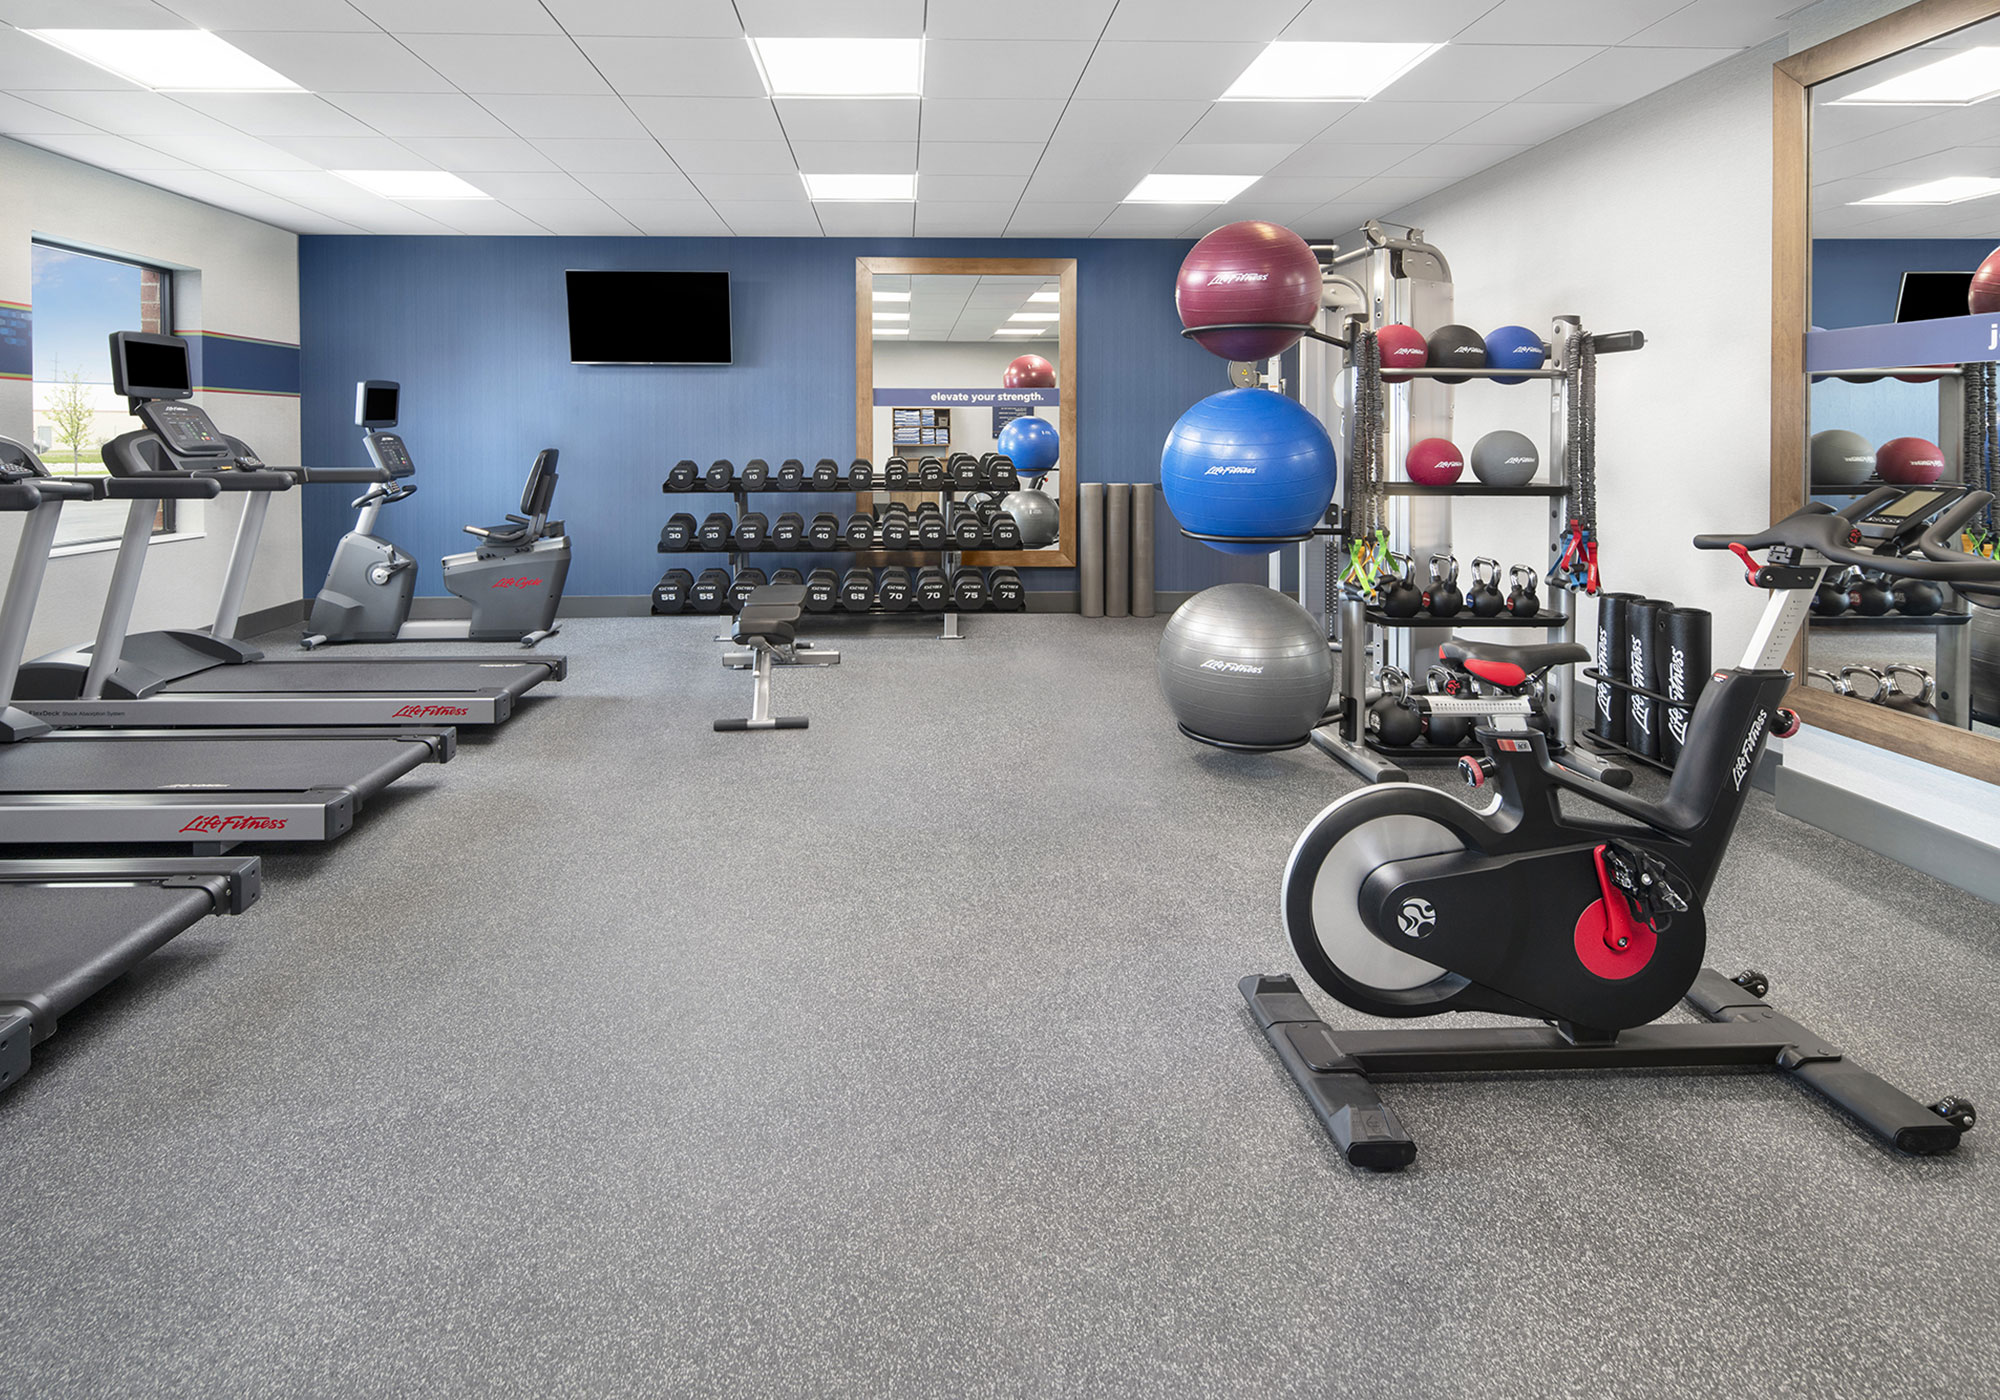 Workout room with exercise bike and tradmills